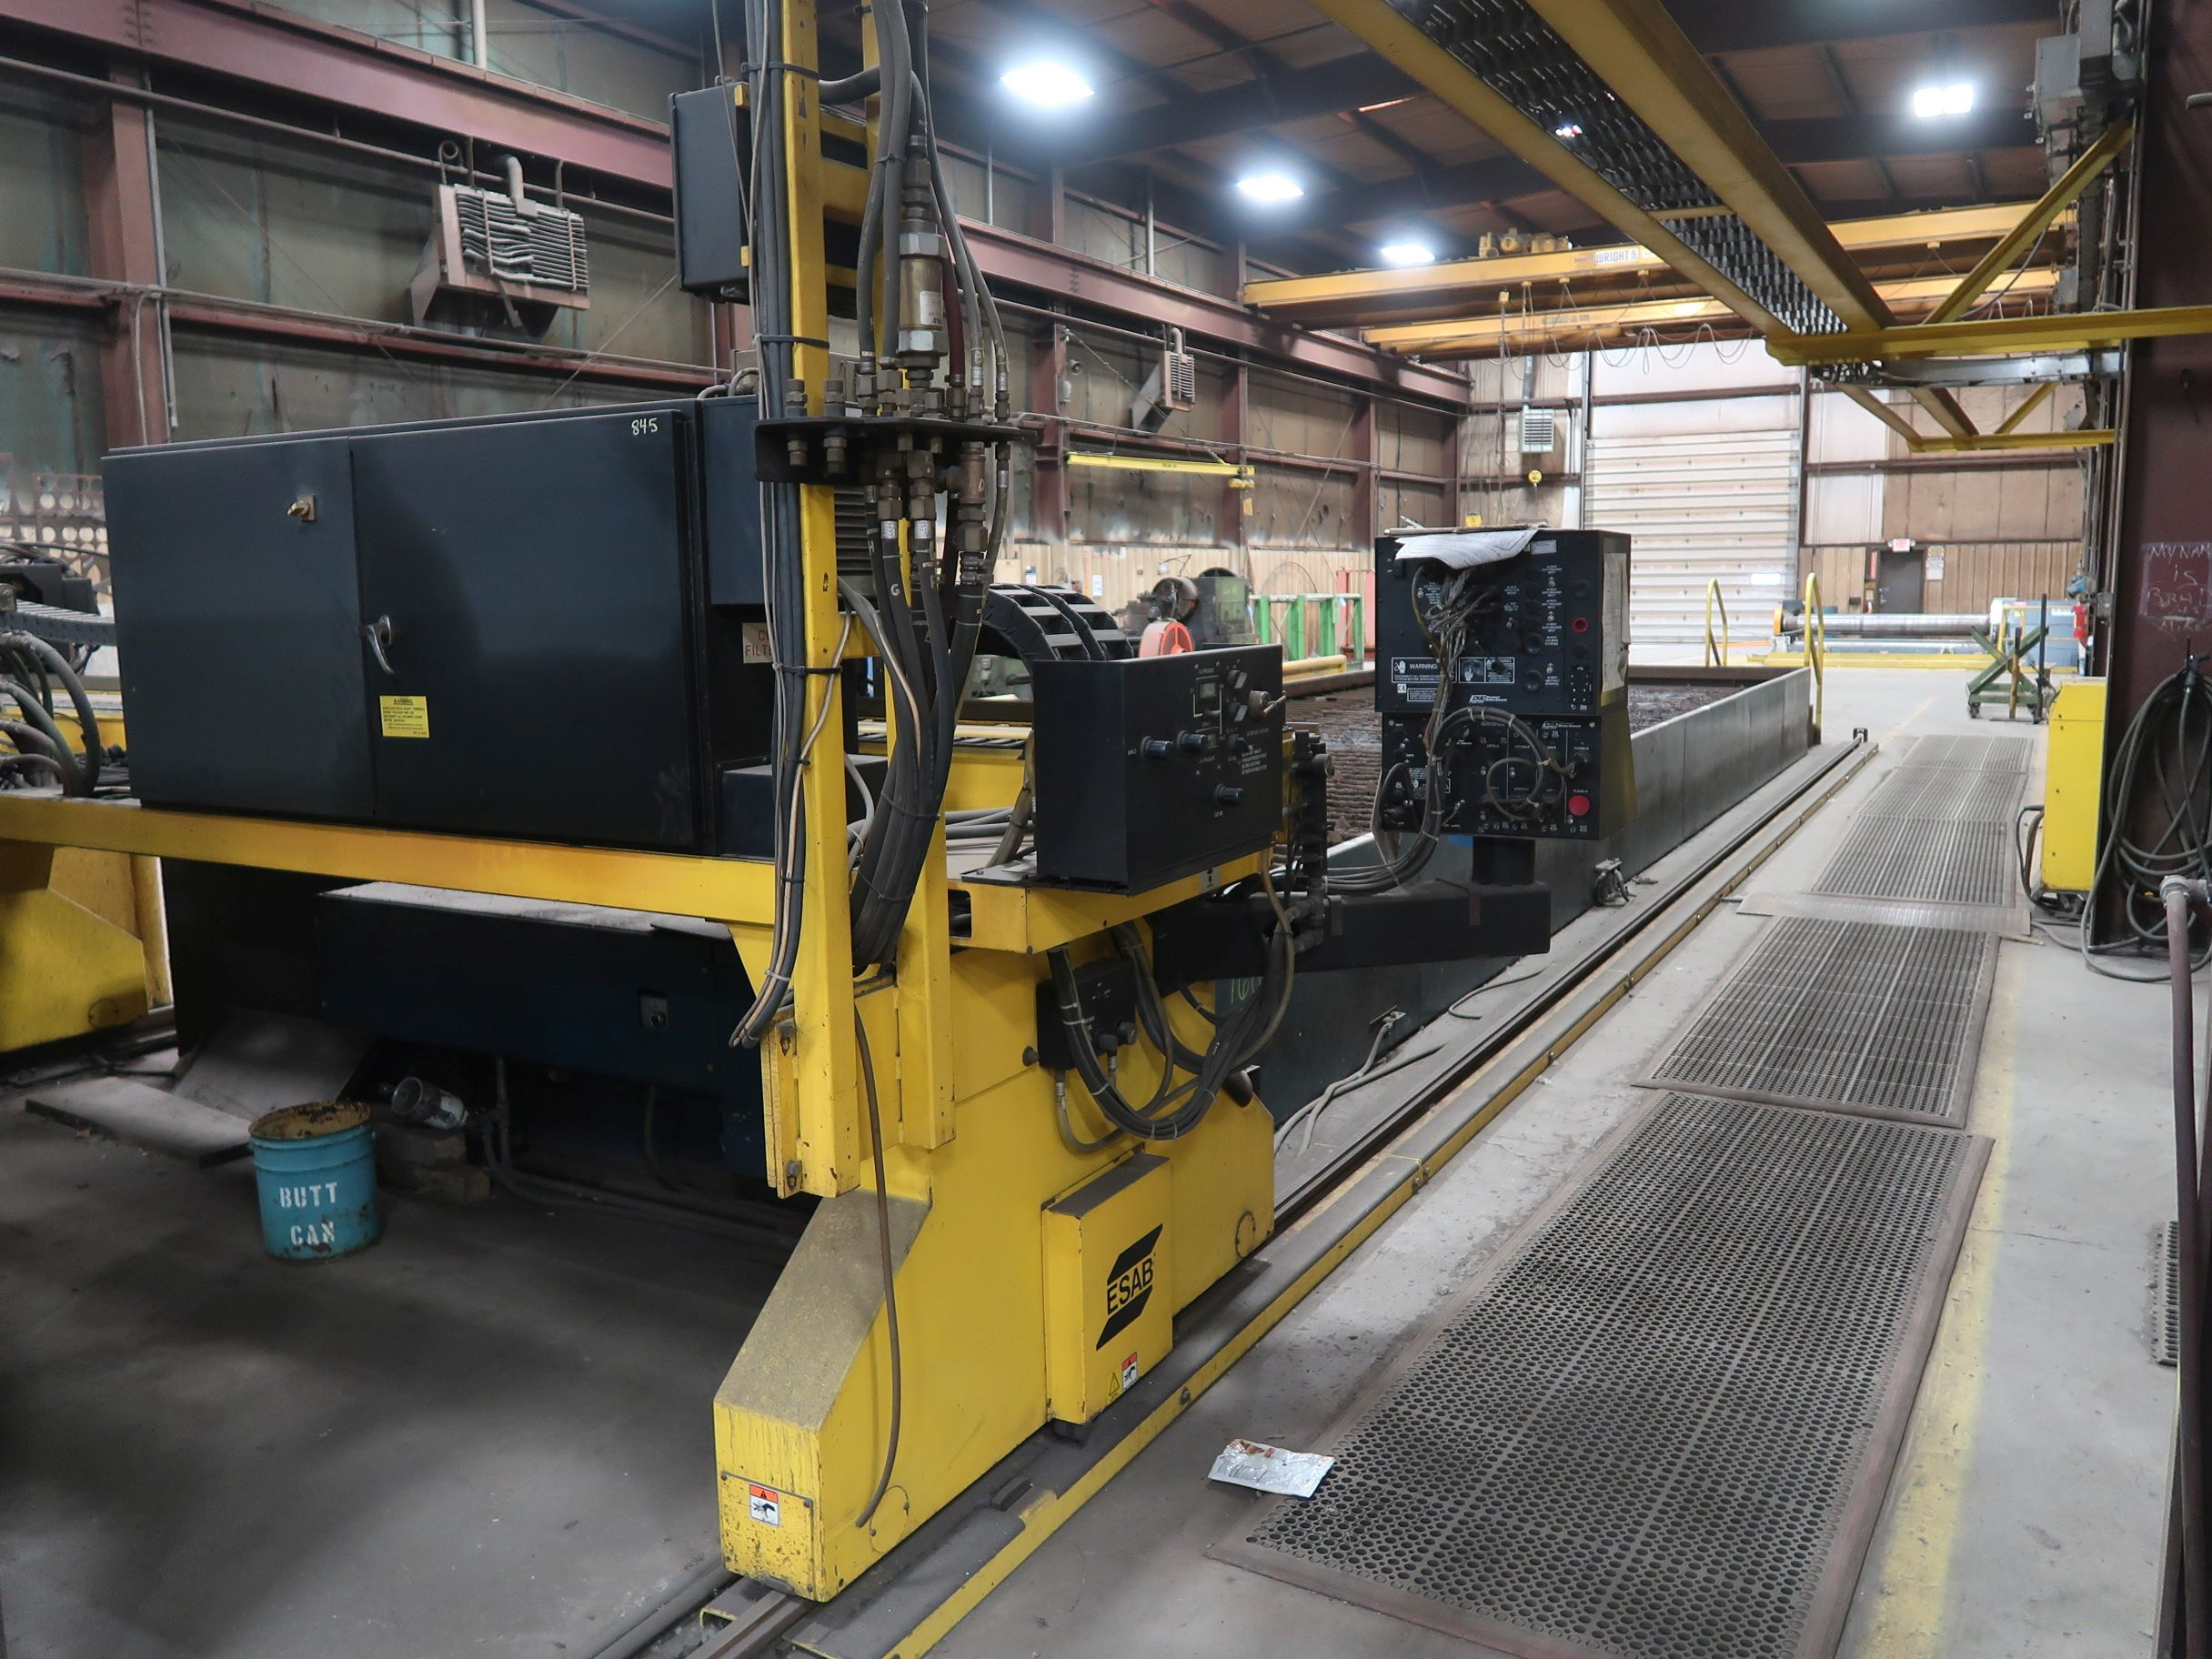 12' X 40' ESAB MODEL AVENGER 1-12 VISION PLASMA TABLE W/ BURNY 10 CONTROL; S/N 0560986386, UPDATED - Image 5 of 23